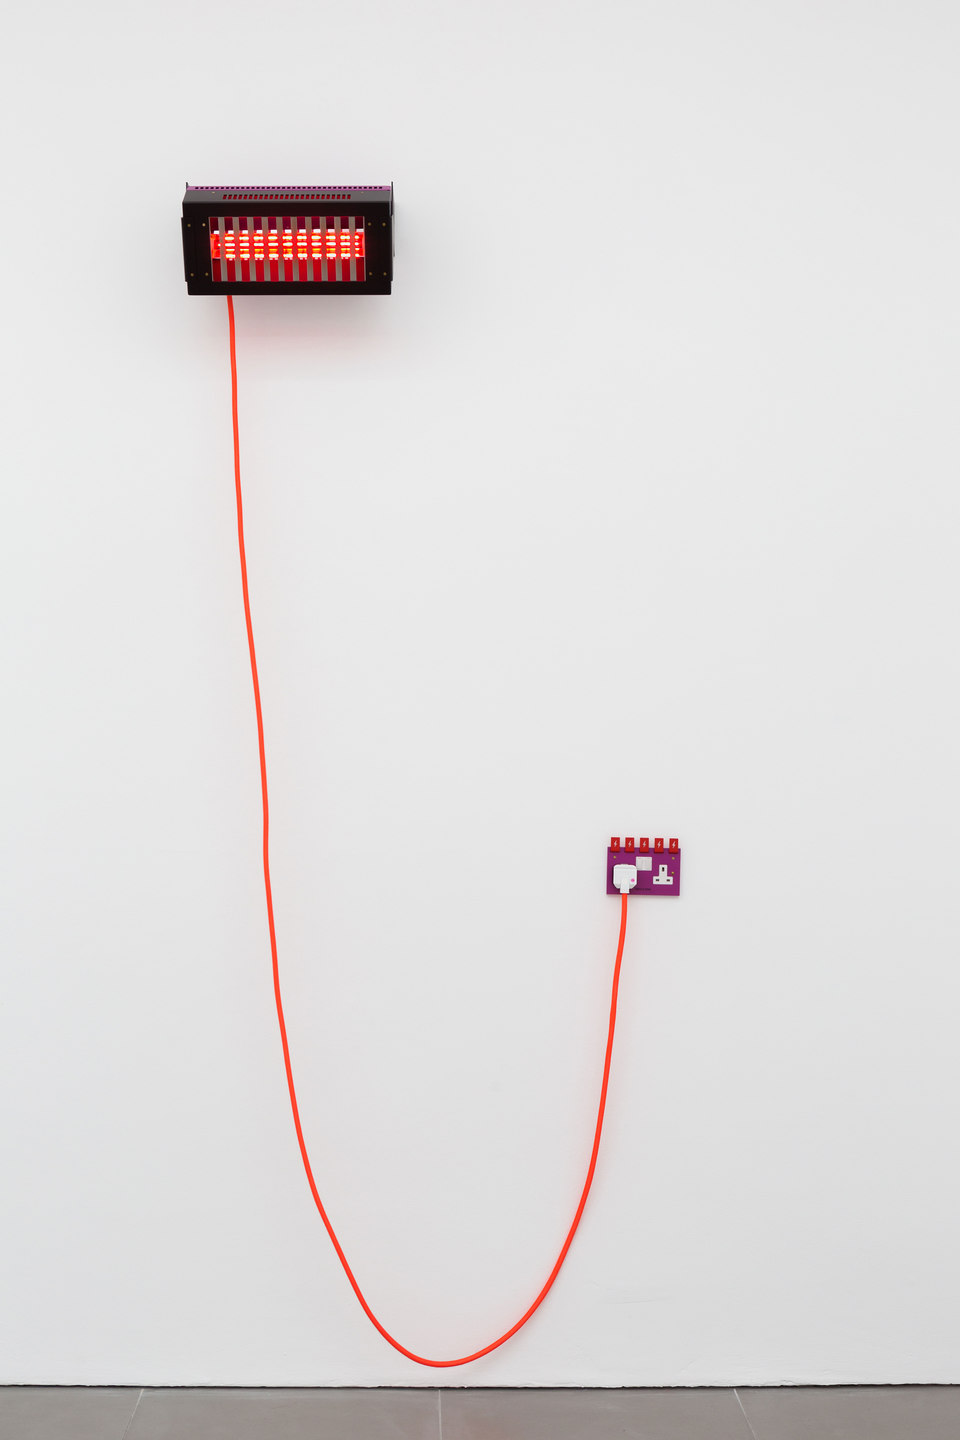 Natalie Dray, DRAY, 'Infrared Fuchsia', 2015, 'Face-Lift Contactum VI', 2015, Cell Project Space